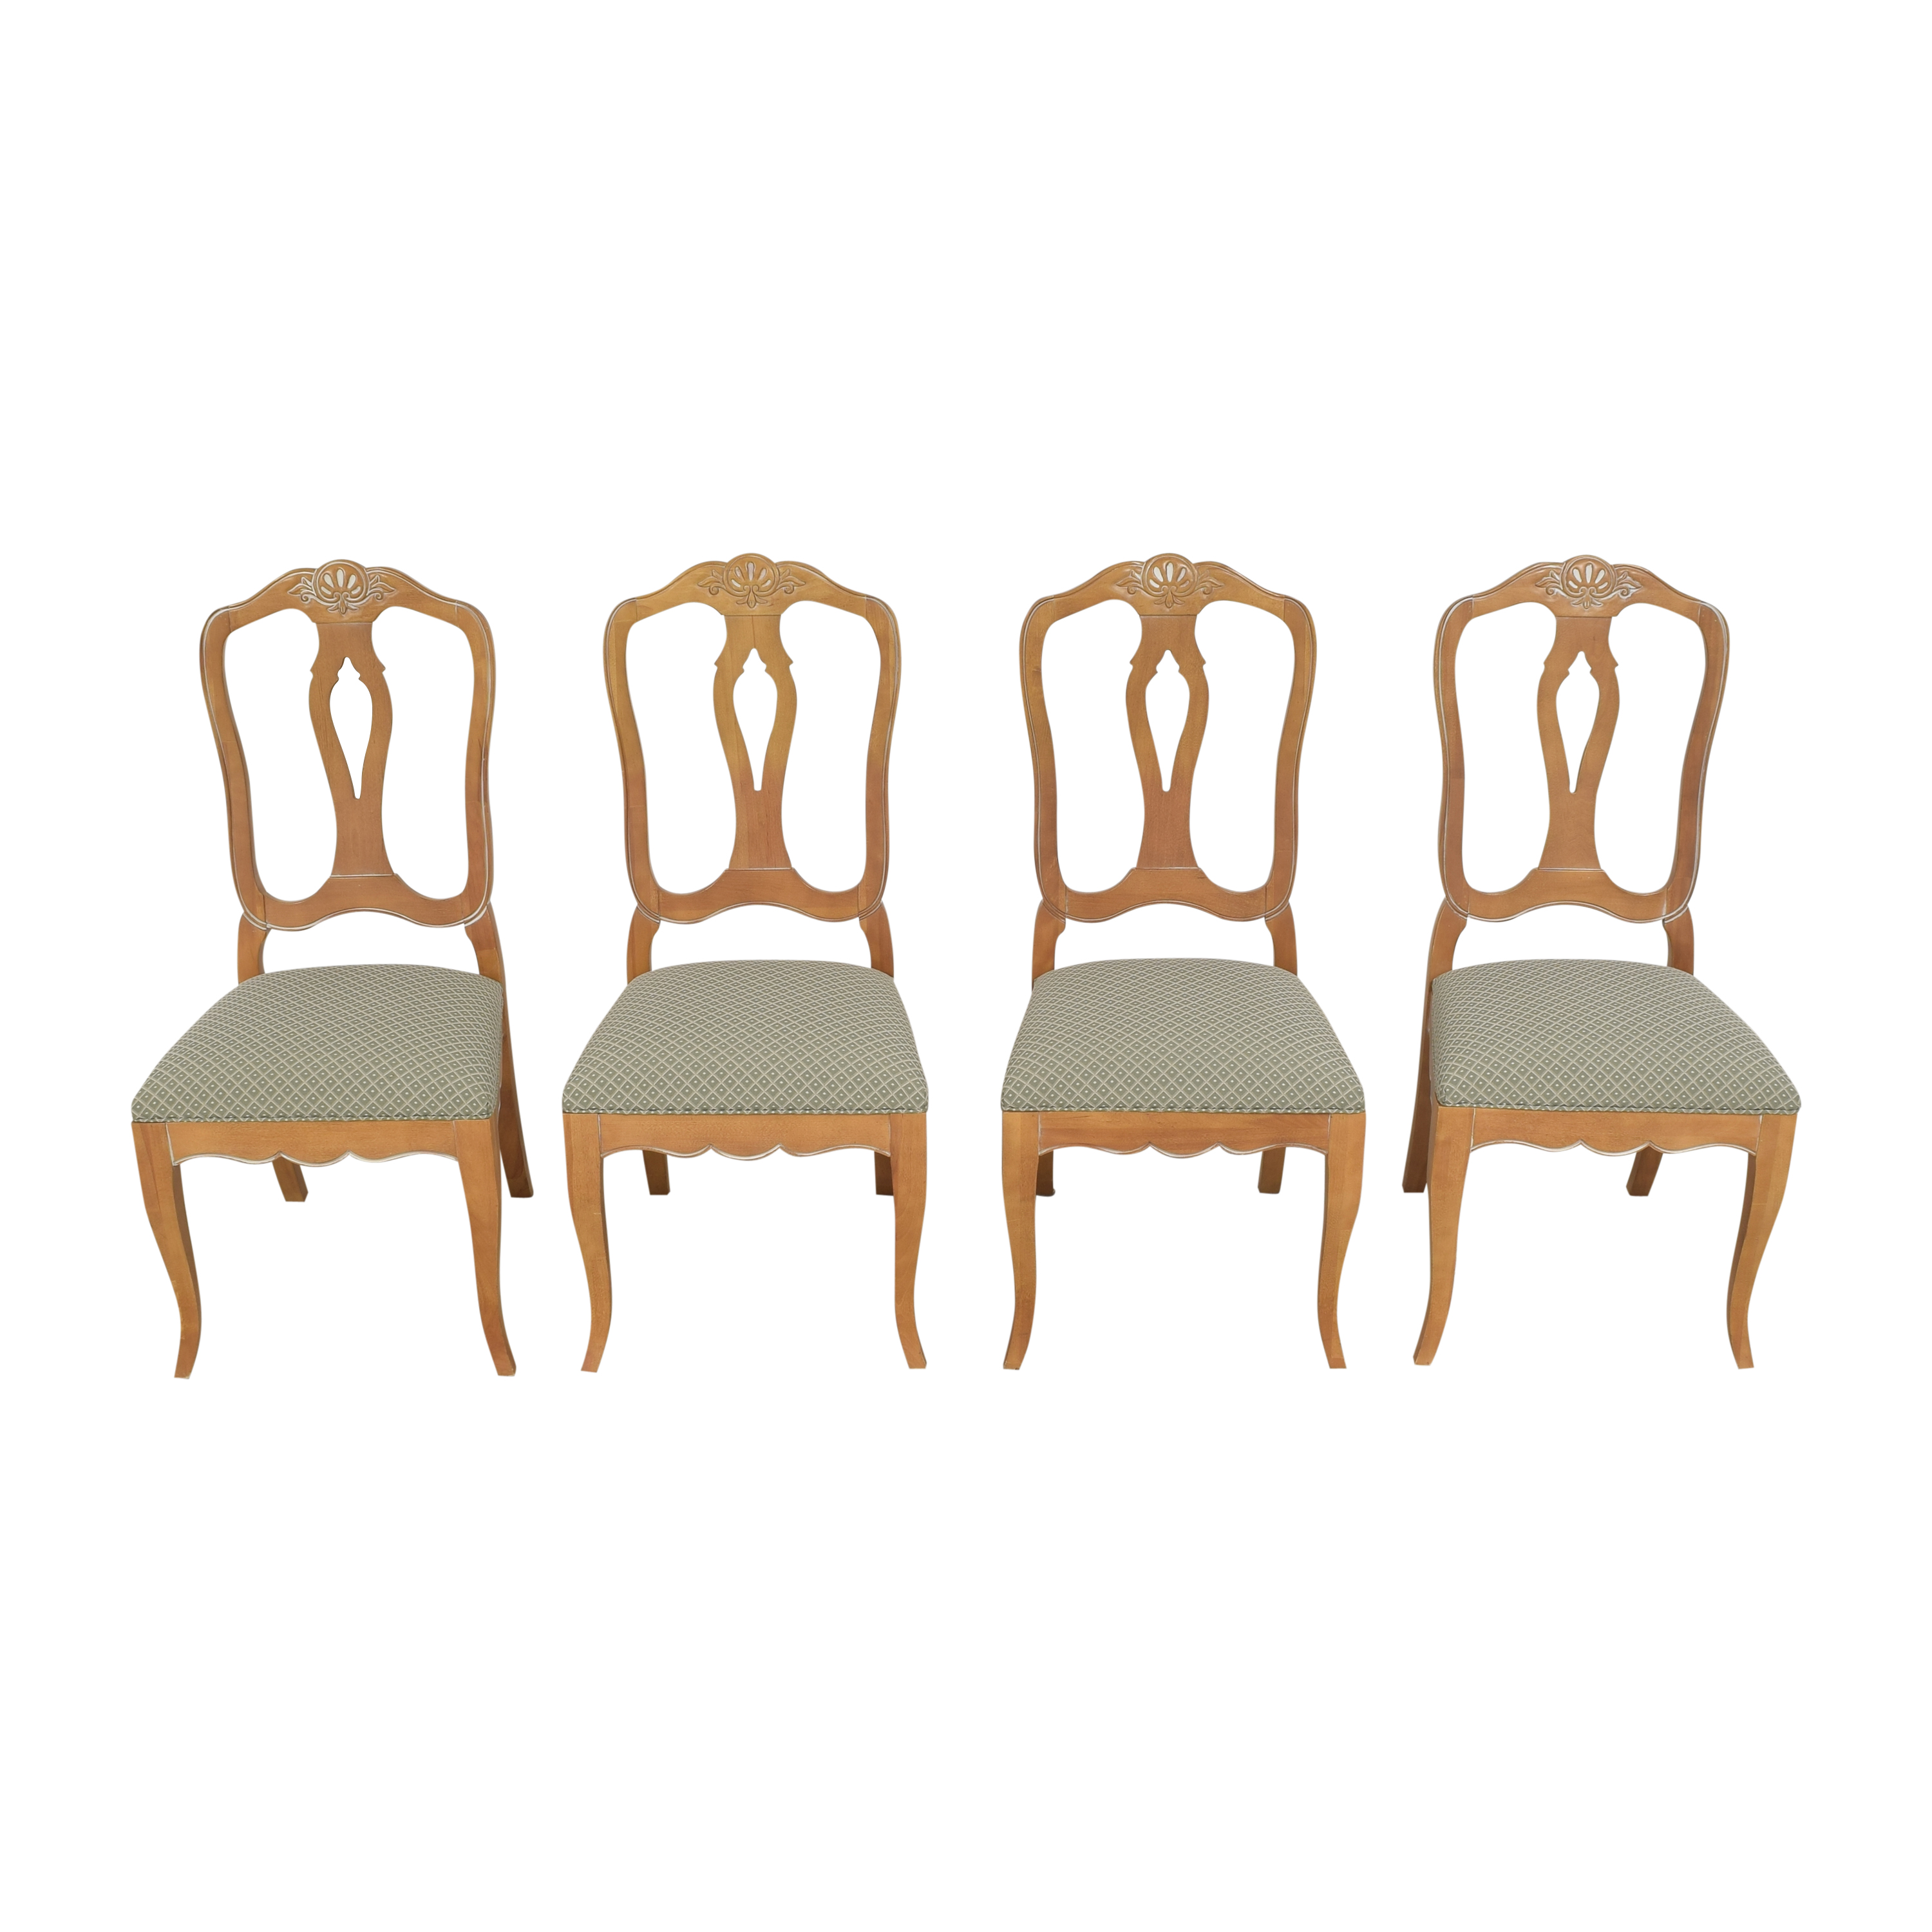 Ethan Allen Ethan Allen Country French Dining Side Chairs for sale